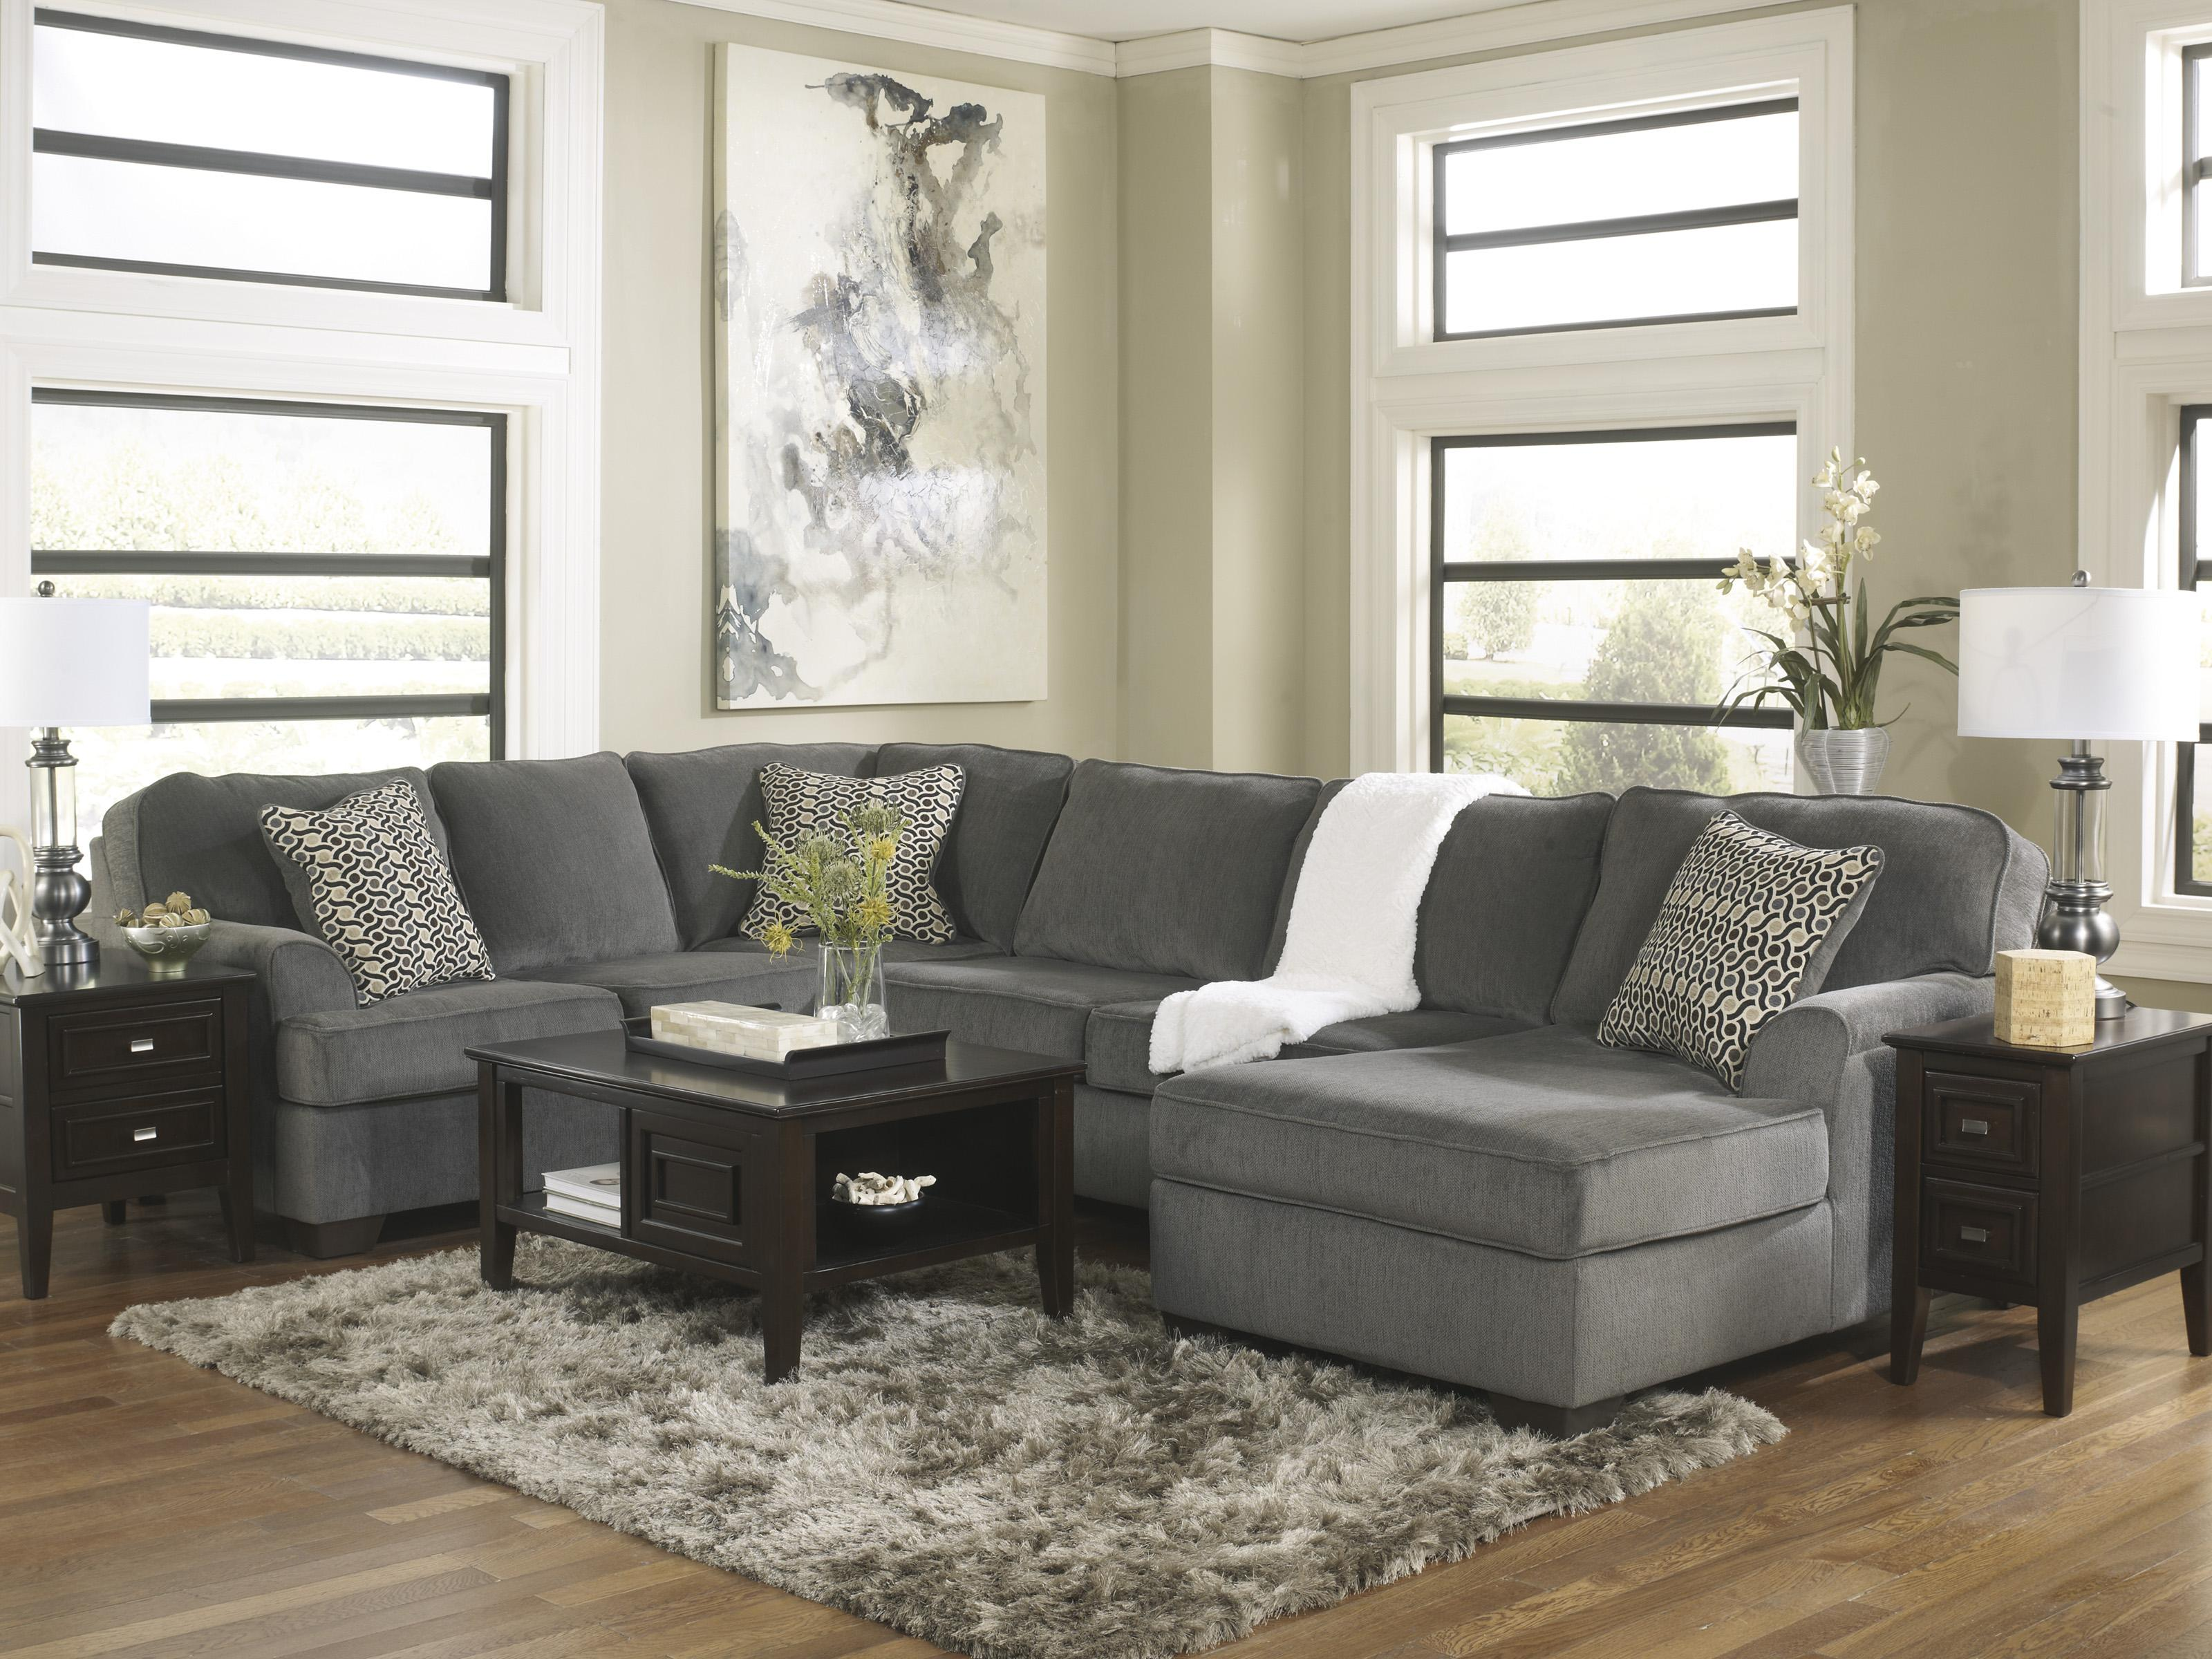 Ashley Furniture Loric Smoke Contemporary 3 Piece Sectional With Right Chaise